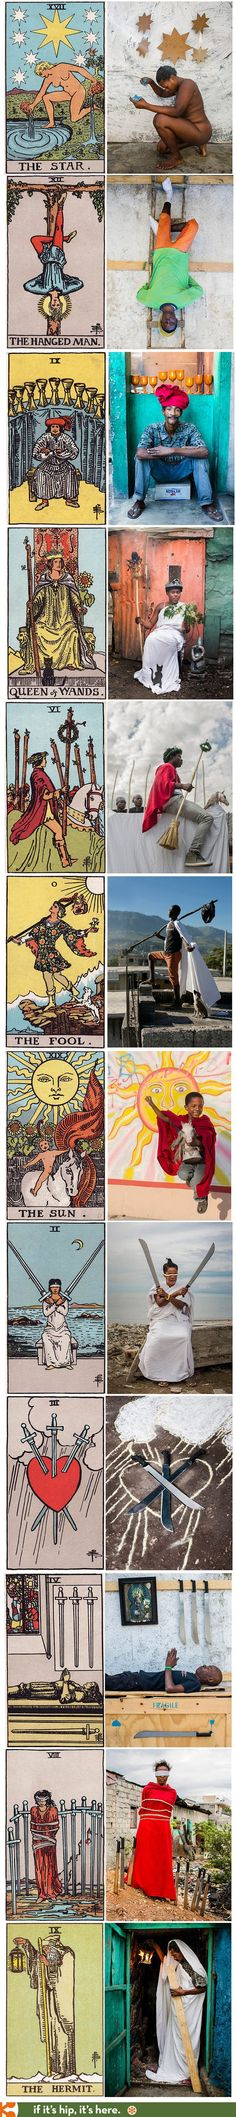 Photographer re-interprets traditional European Tarot Cards with photographs from Haiti.  Apologies for the article's insensitive title - this pinner did not notice it originally - but I feel the artwork is beautifully done even if the accompanying text is not at all.